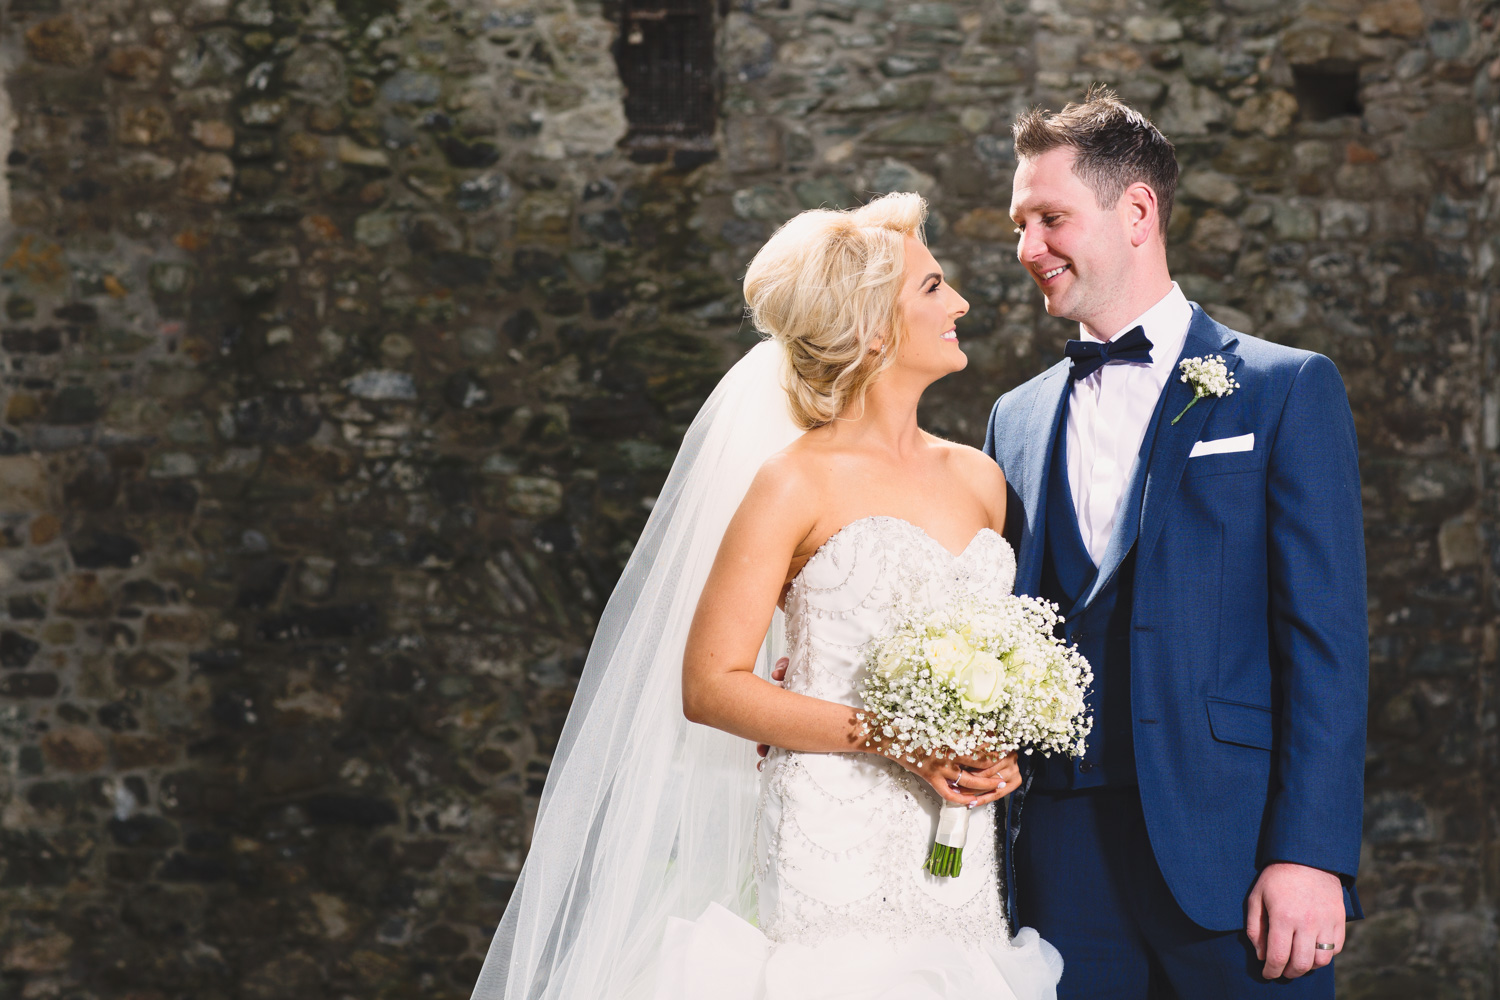 Mark_Barnes_wedding_photographer_Northern_Ireland_Wedding_photography_Carlingford_Four_Seasons_Wedding-35.jpg